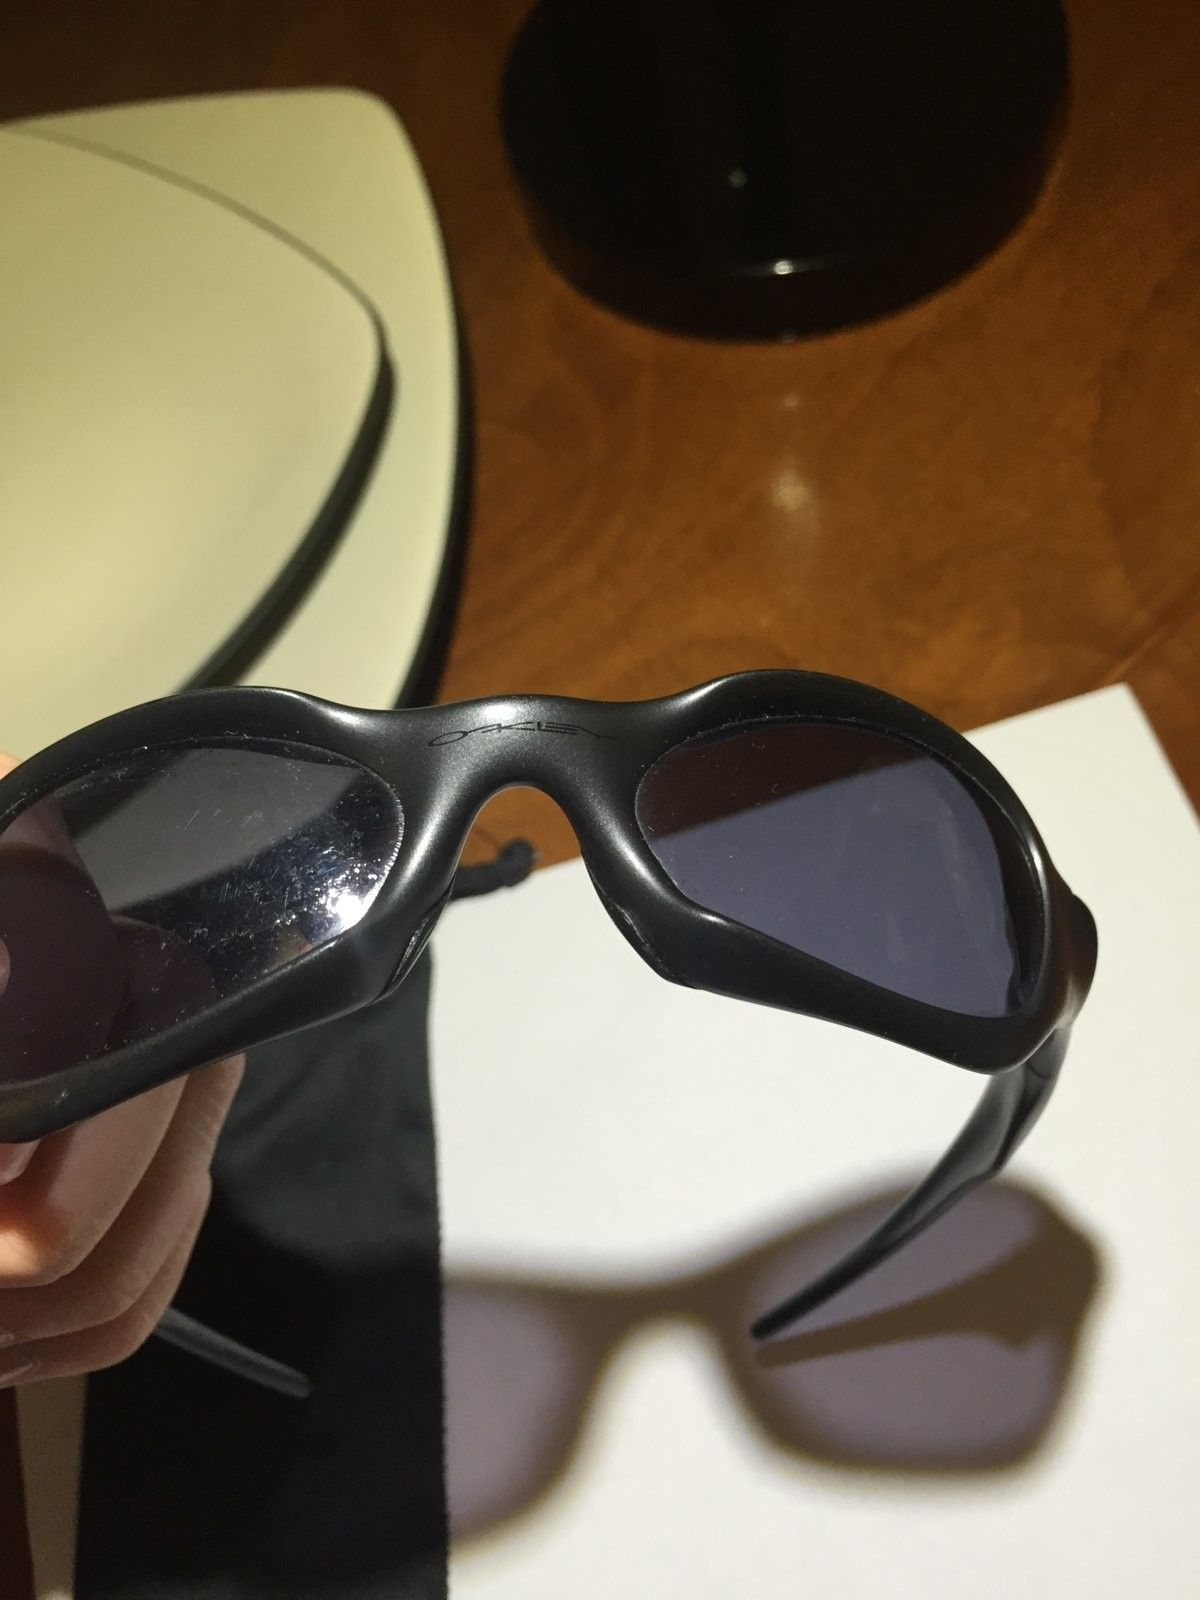 Recovered my beloved first pair of Oakleys - IMG_4816.JPG